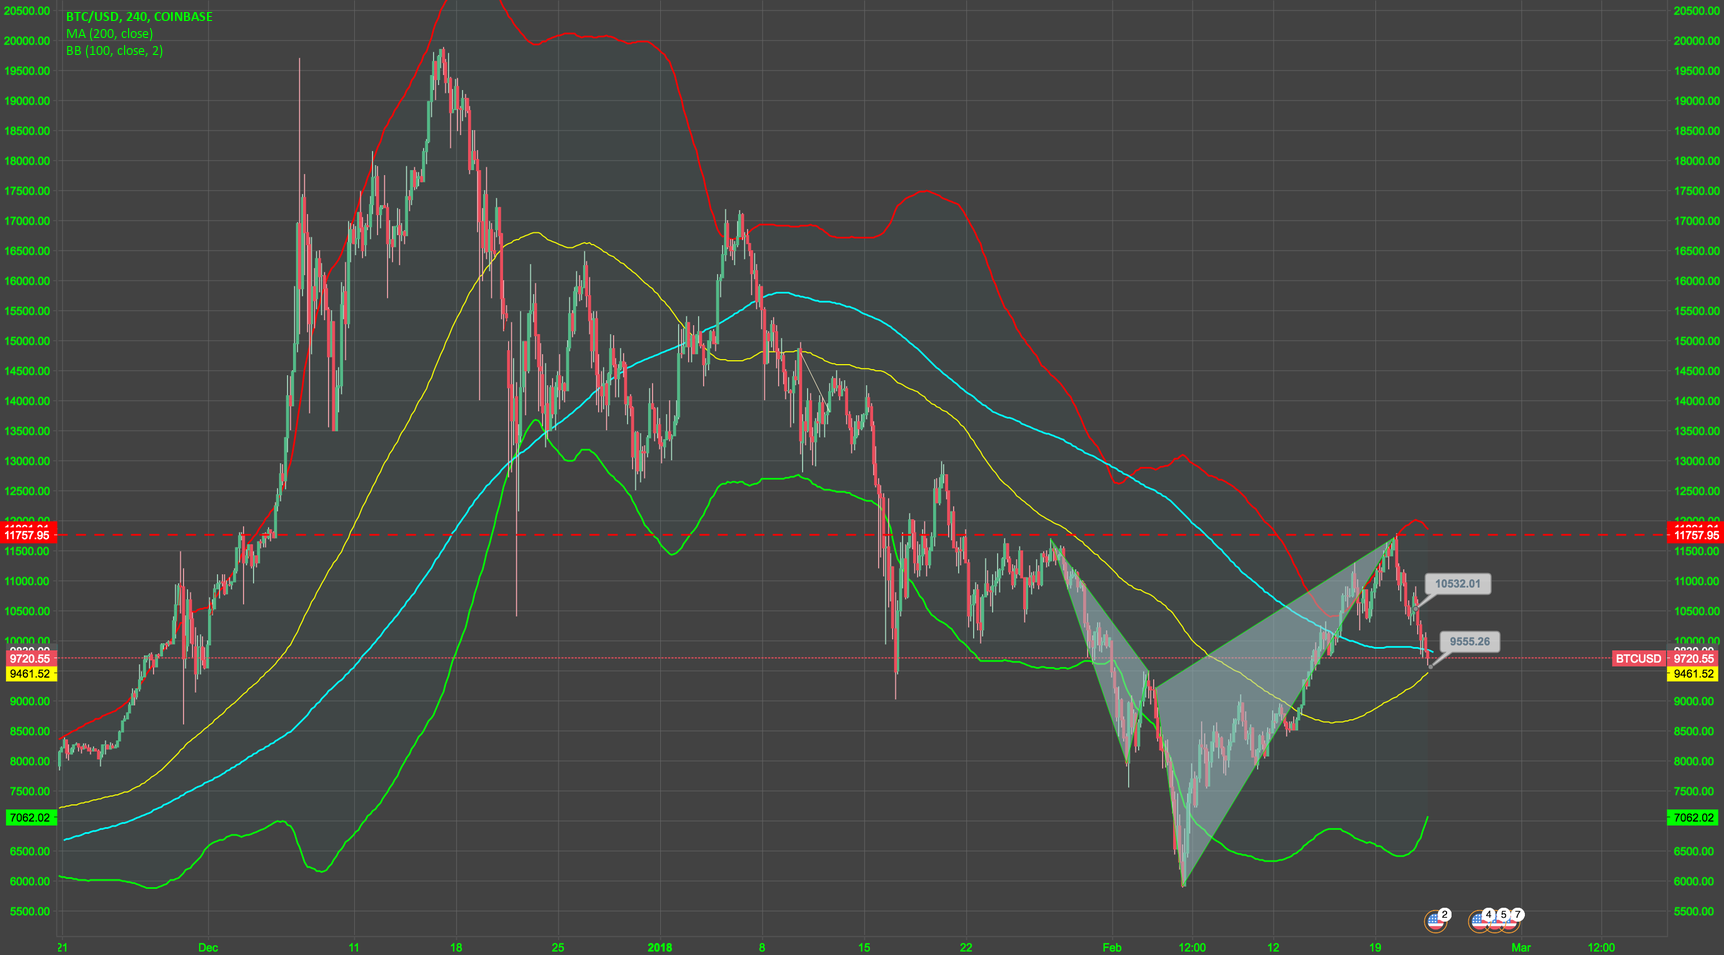 doubt it's head and shoulders, inverse